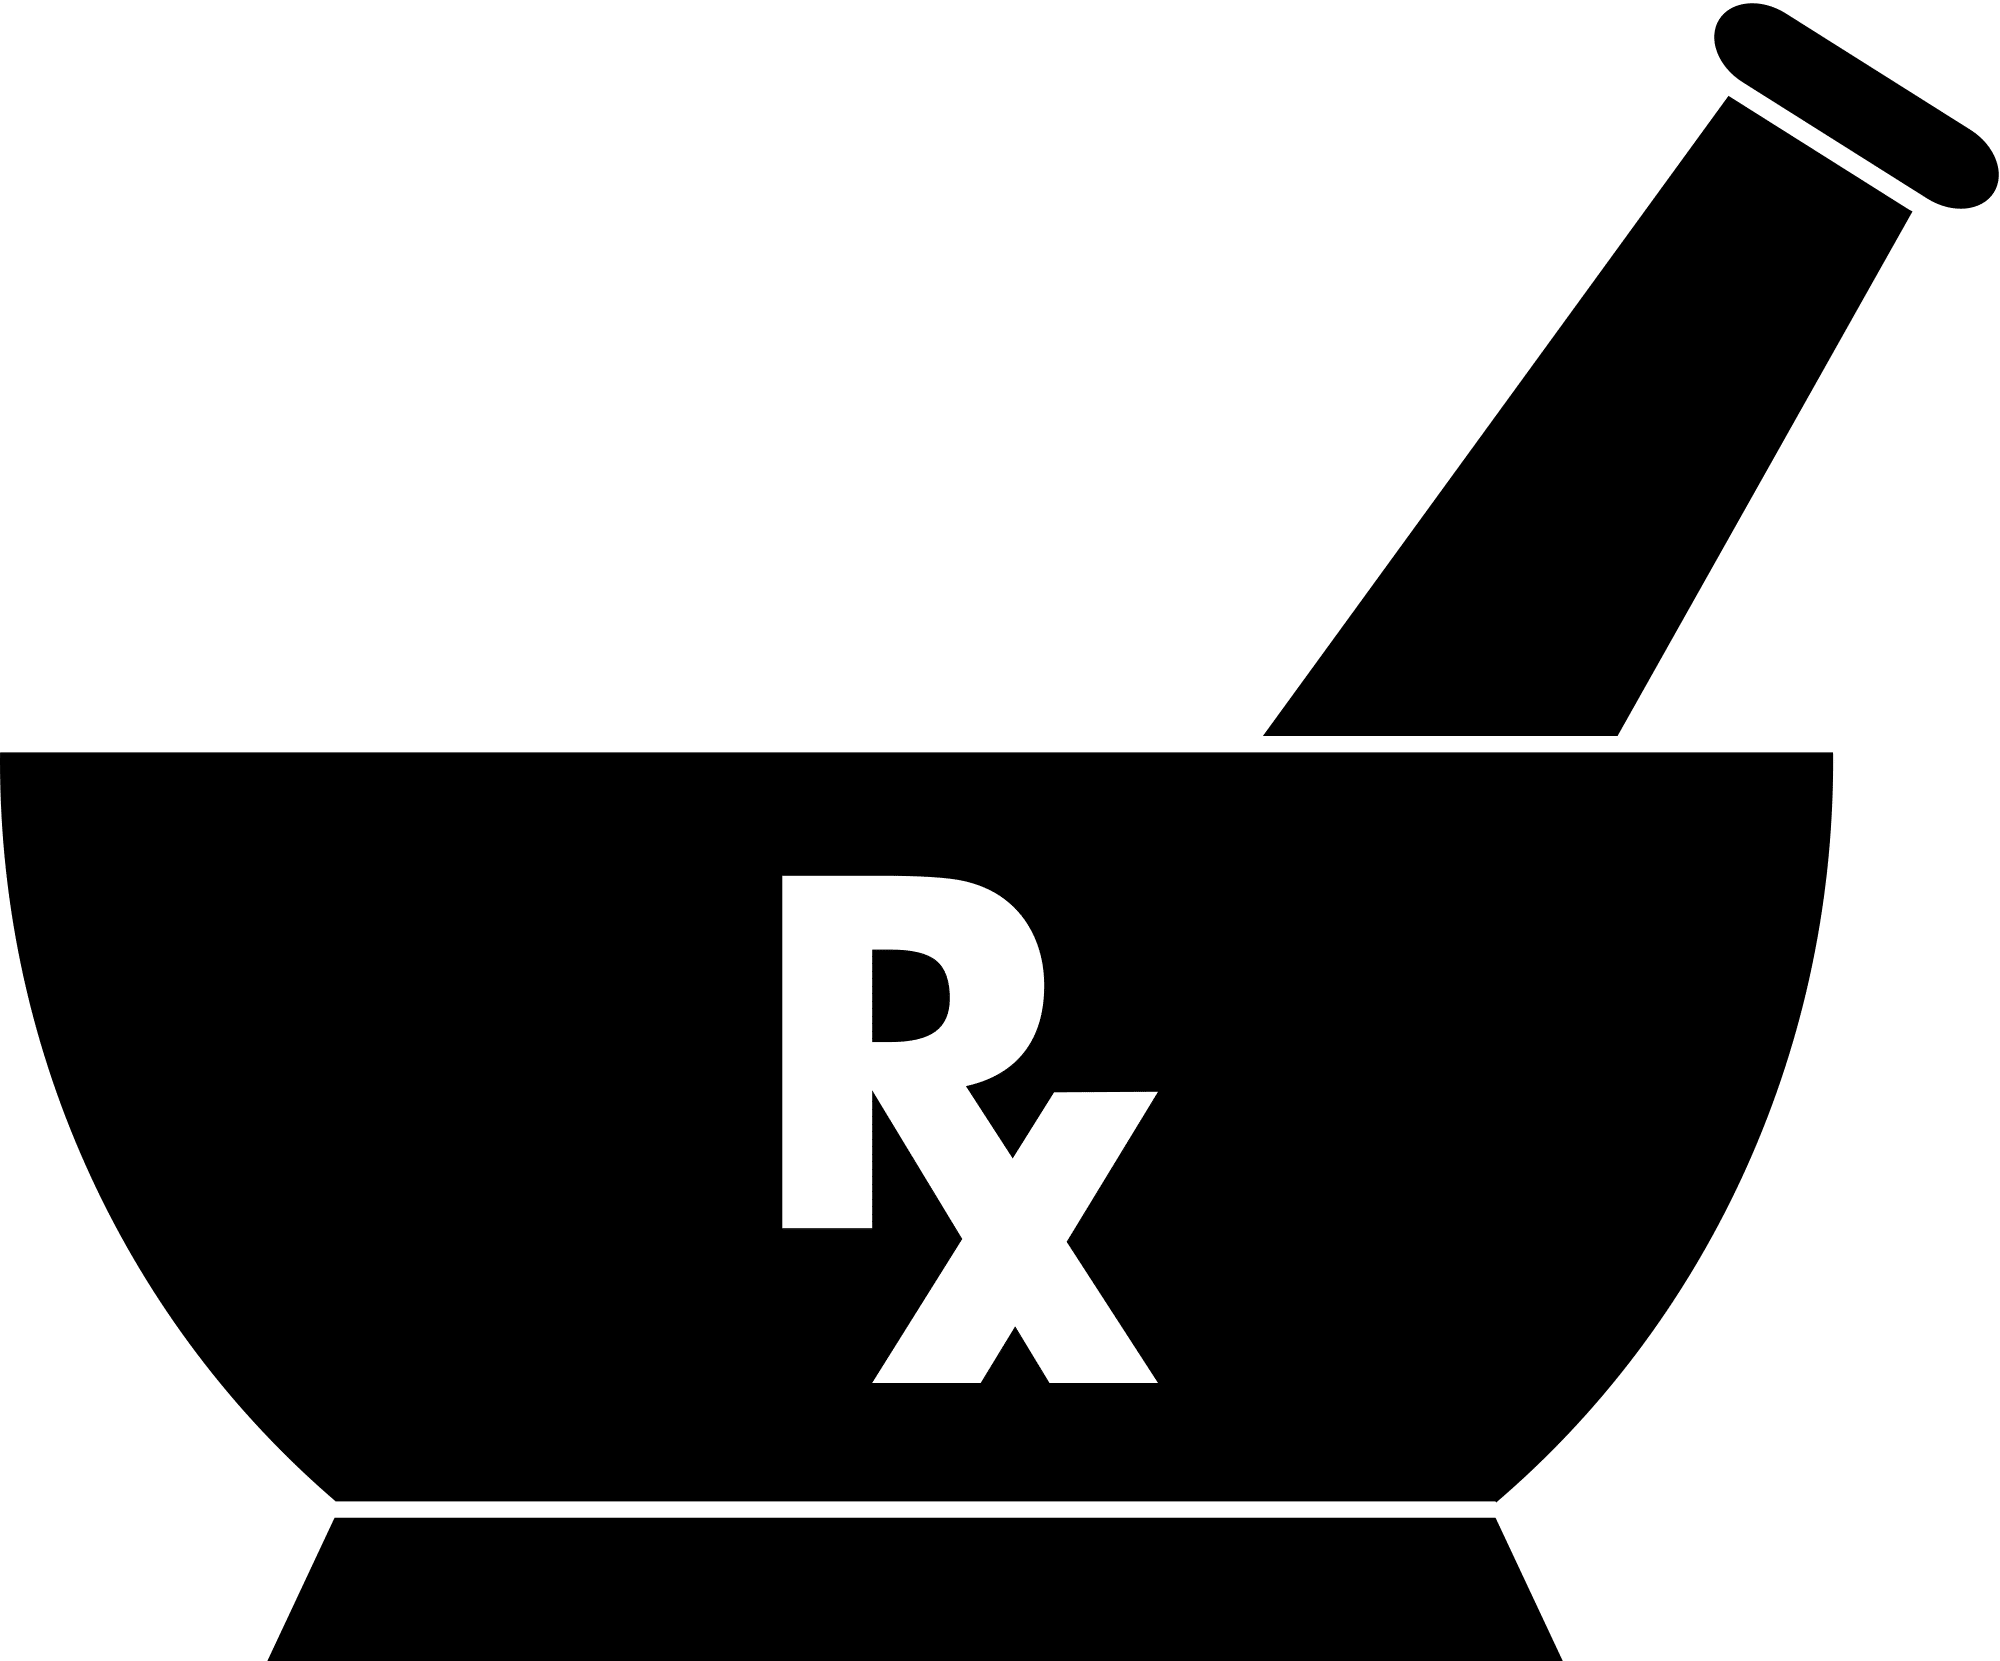 FDA Approved Rx Medication